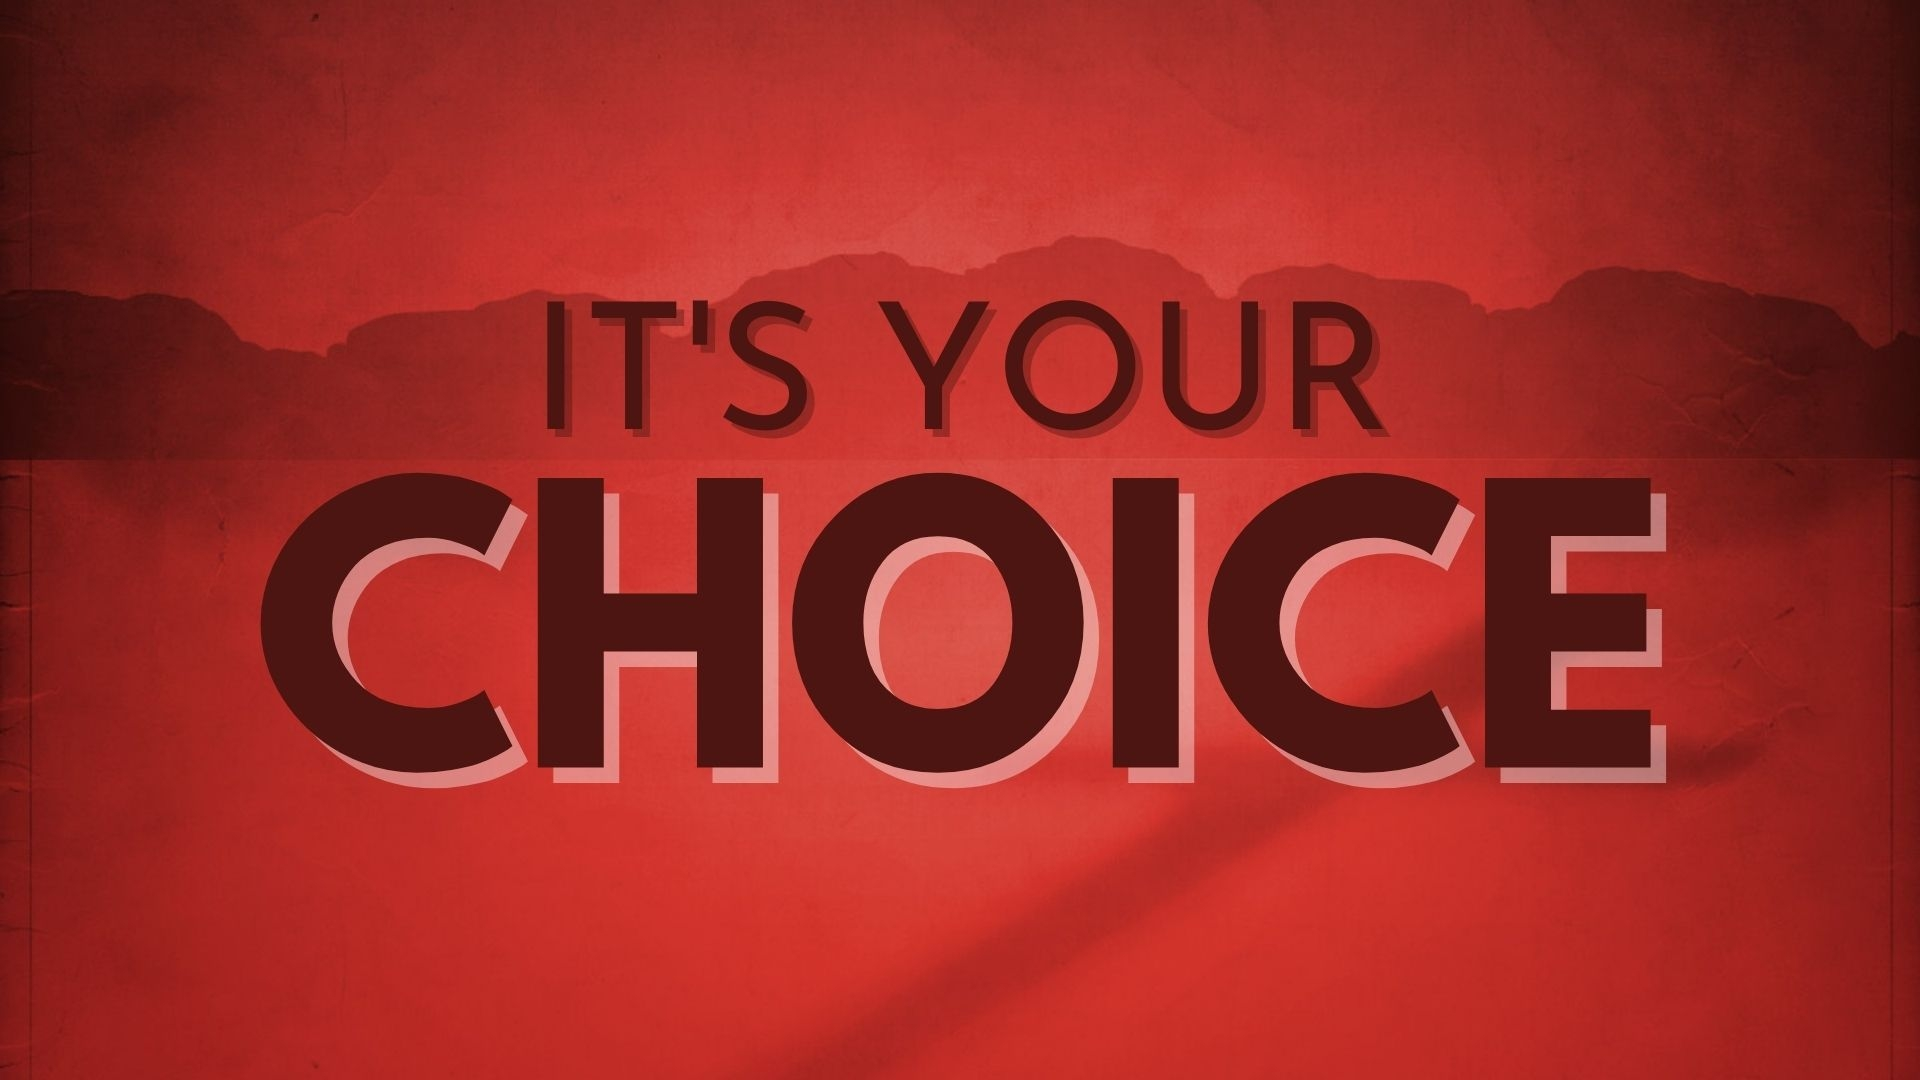 Sunday April 11, 2021 It's Your Choice - Pastor Anthony Cox